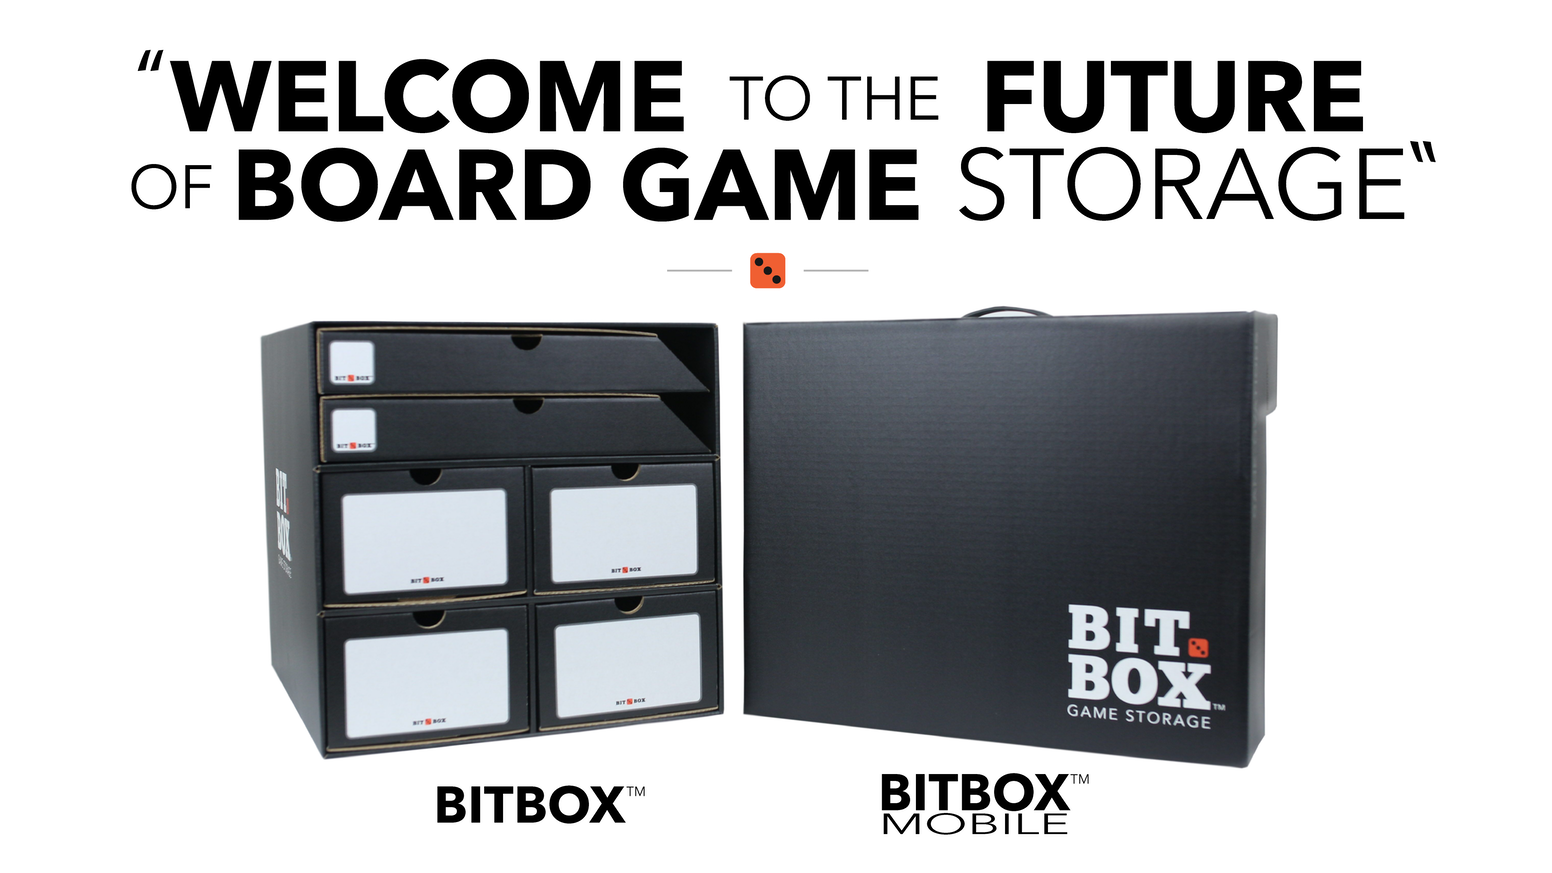 Bitbox space saving easy traveling board game storage for Board game storage solutions